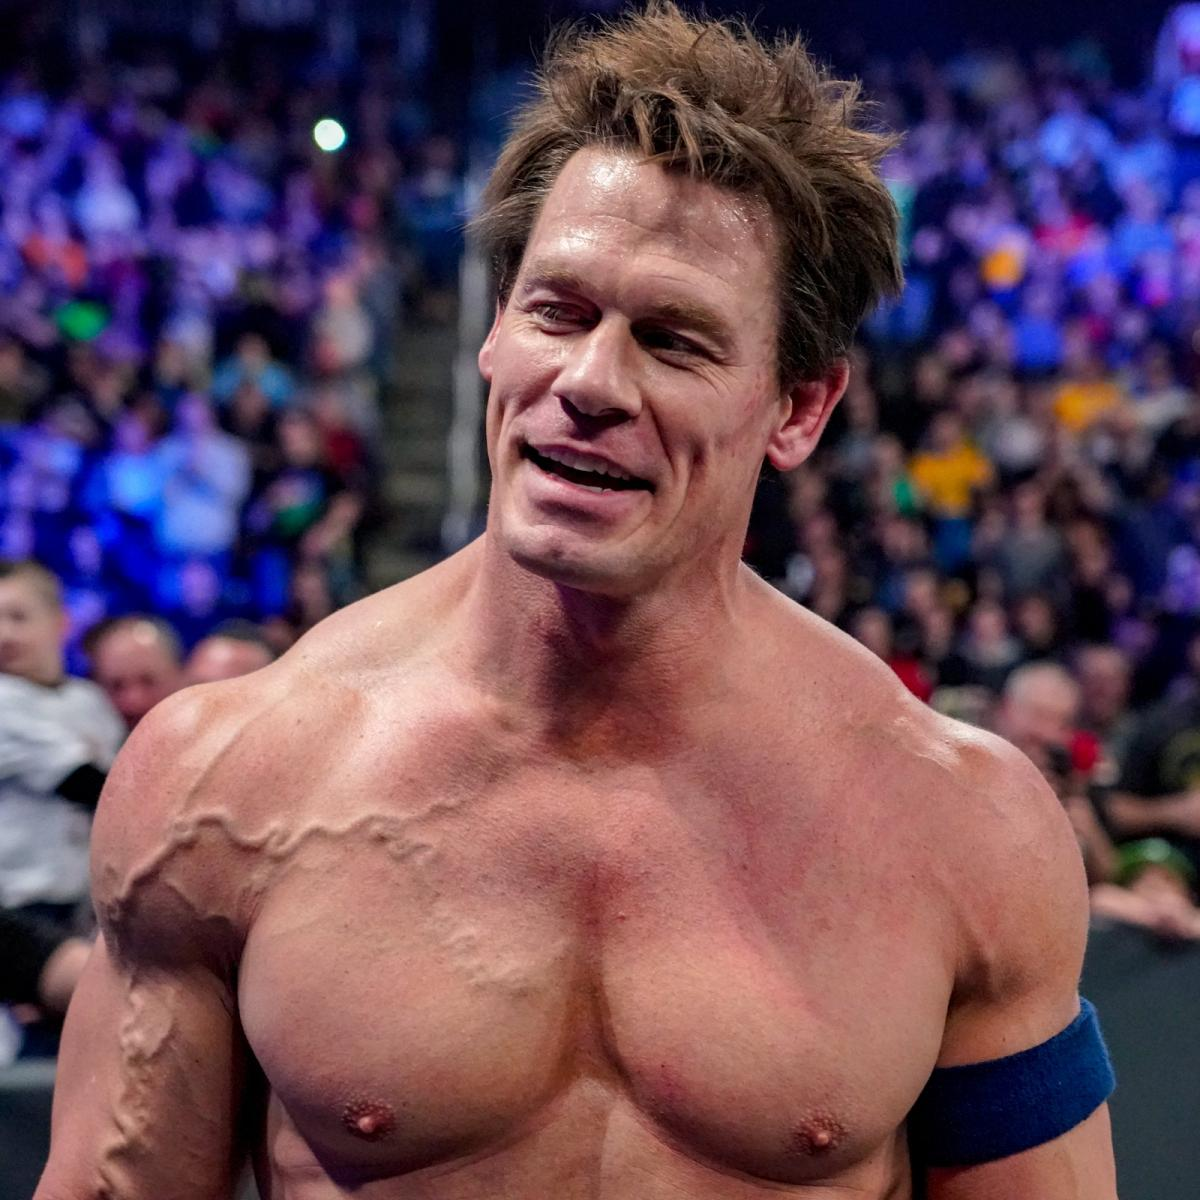 John Cena Haircut Styles – Why People Love Them